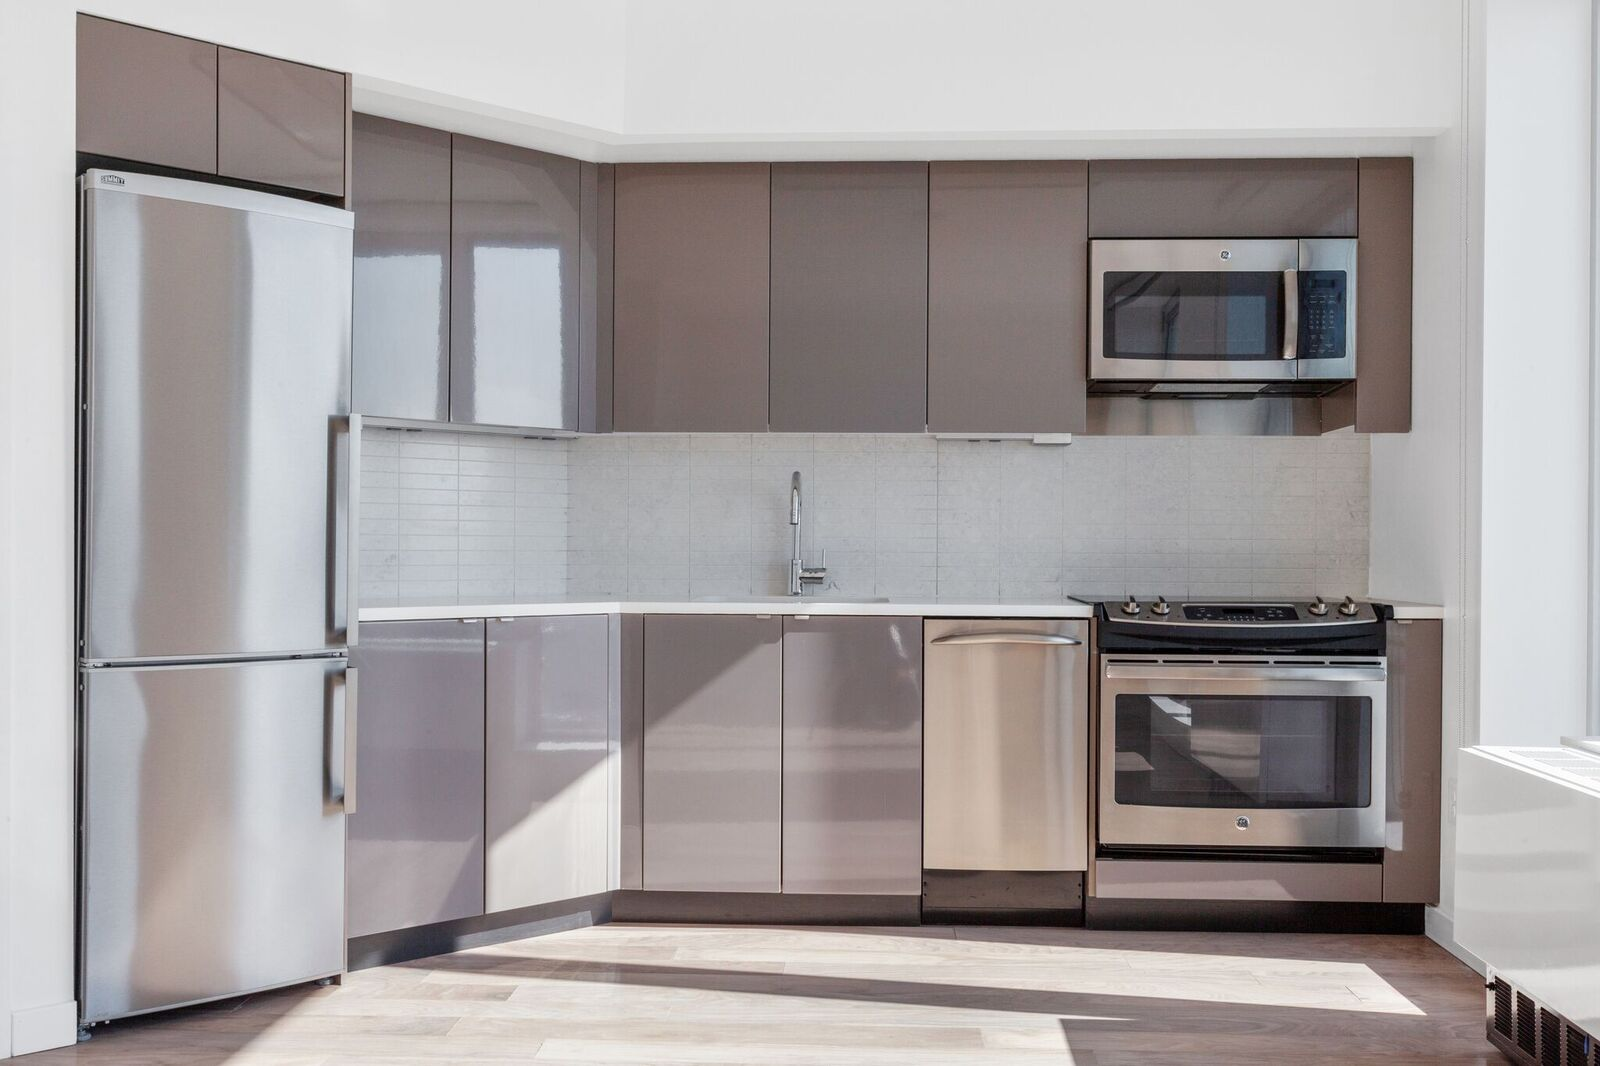 Stainless Steel GE Appliances at 461 Dean, Brooklyn, NY